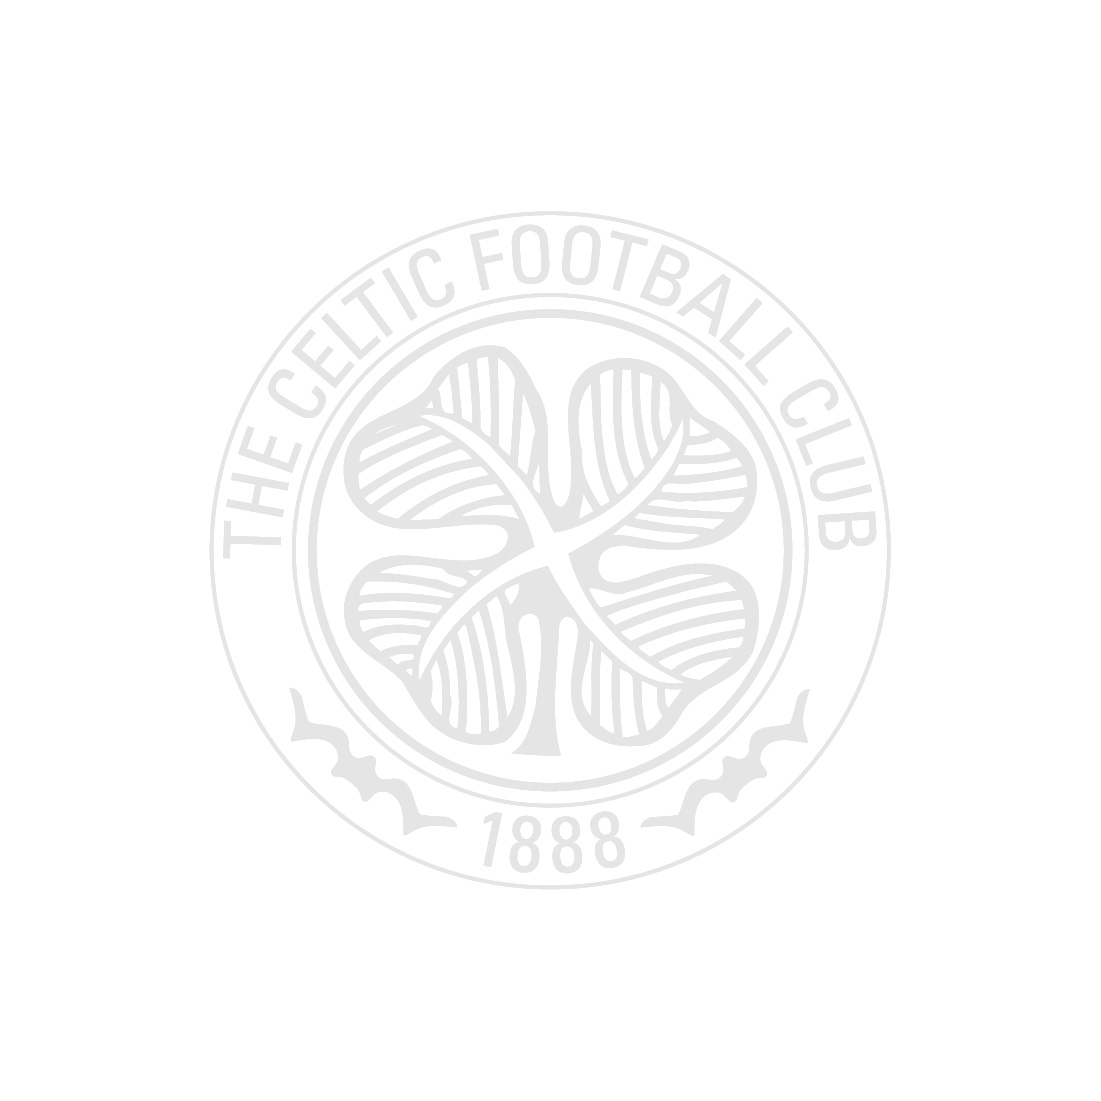 Celtic Womens 1888 Flag T-Shirt